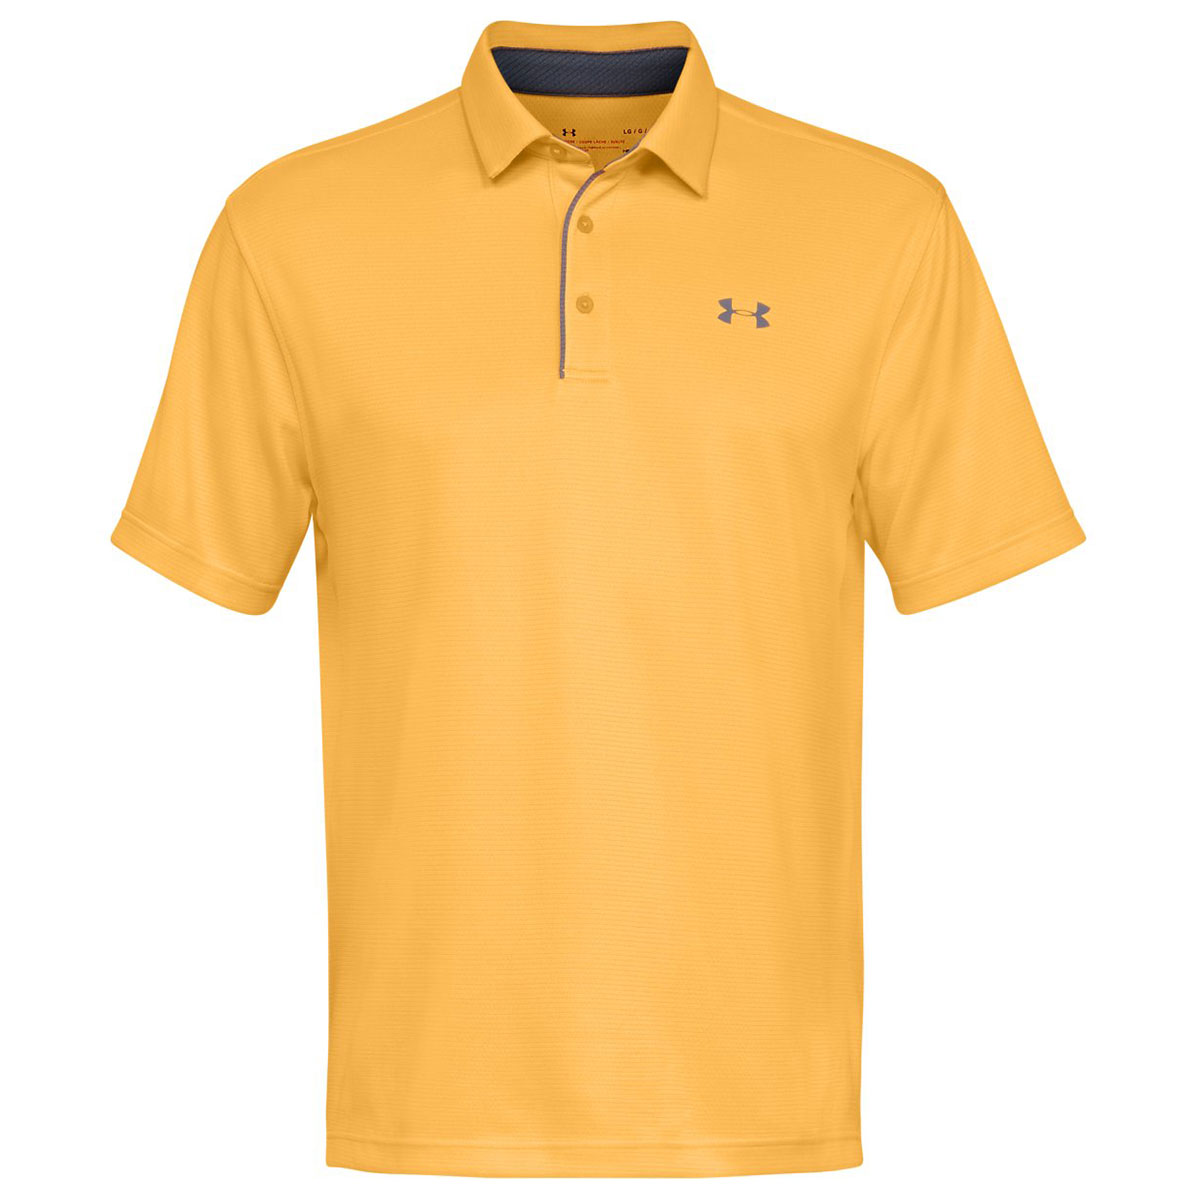 Under-Armour-Mens-2019-Golf-Tech-Wicking-Textured-Soft-Light-Polo-Shirt thumbnail 46